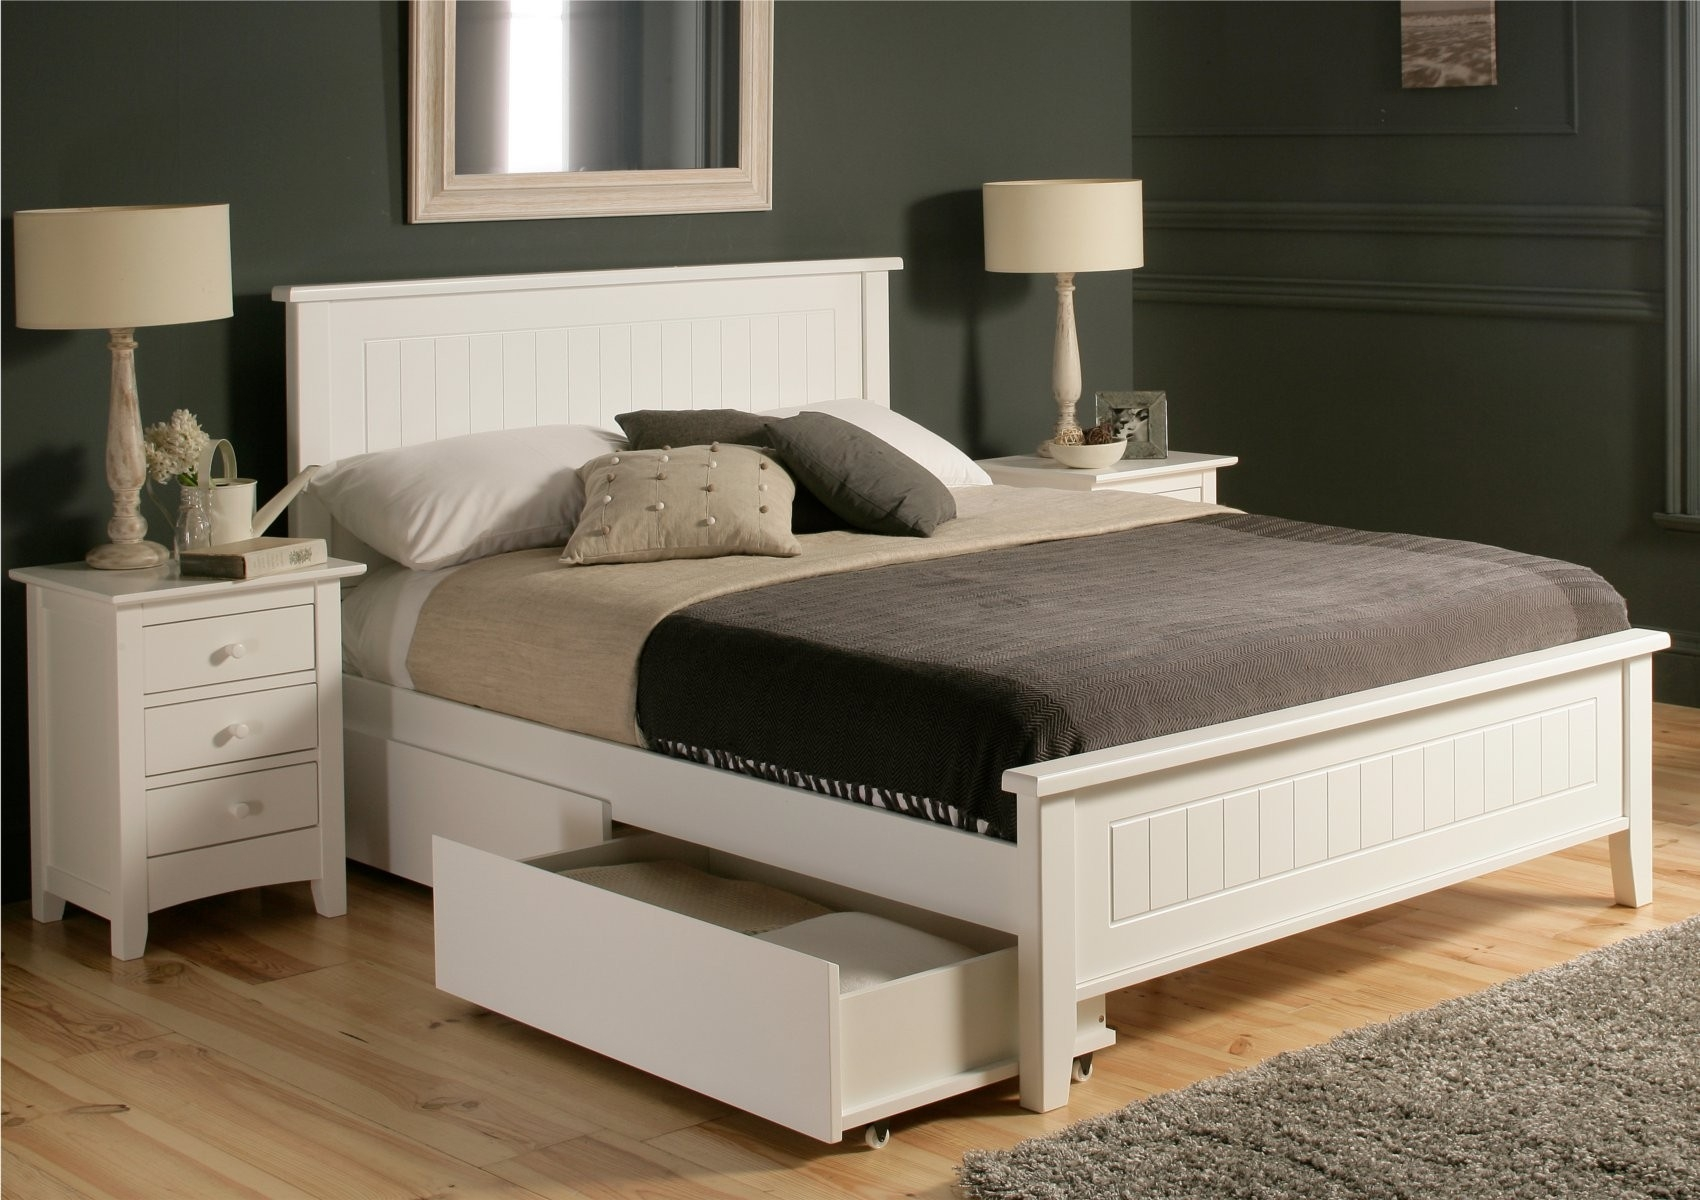 Different Types Of Bed Frame Stylesvarious types of bed frames homesfeed